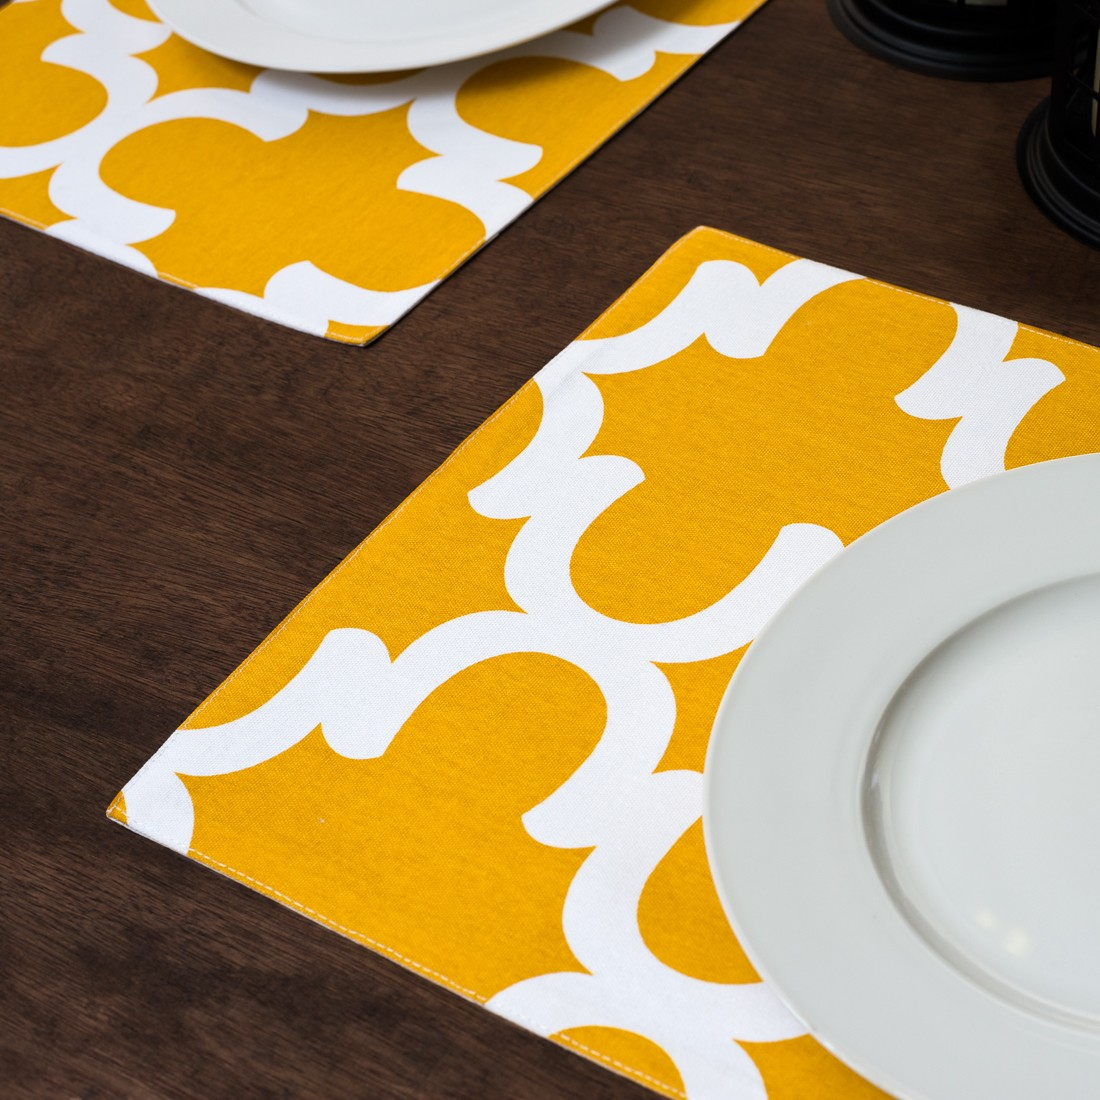 Linen Tablecloth Trellis Placemat Set (set of 4), Mustard Yellow and White by Linen Tablecloth